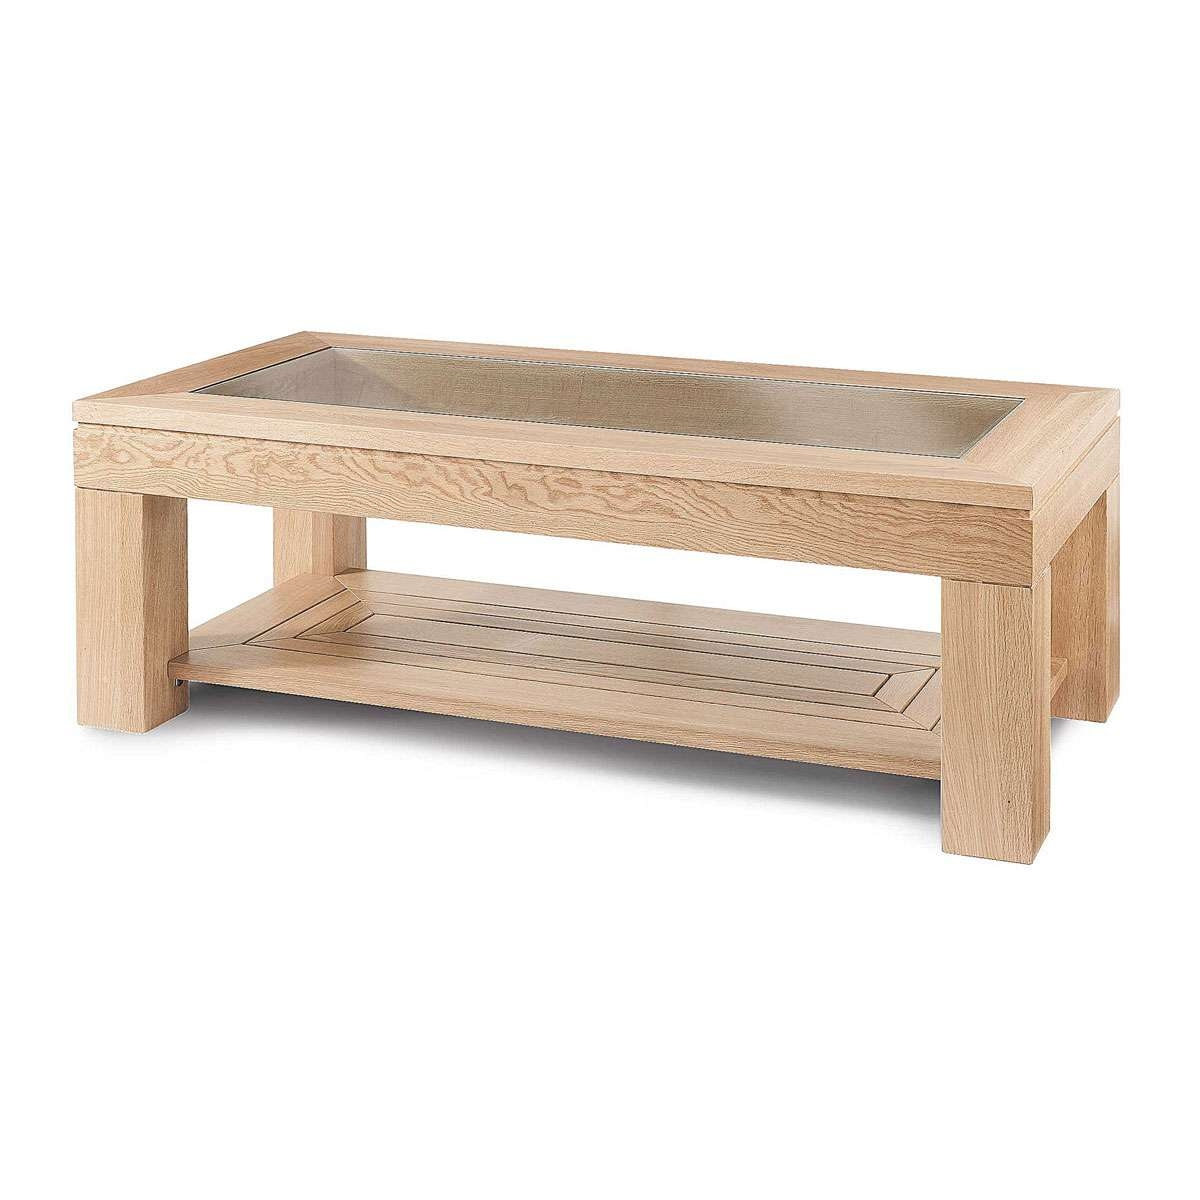 Well Liked Oak And Glass Coffee Table Throughout 20 Great Rectangular Oak Coffee Tables (View 6 of 20)